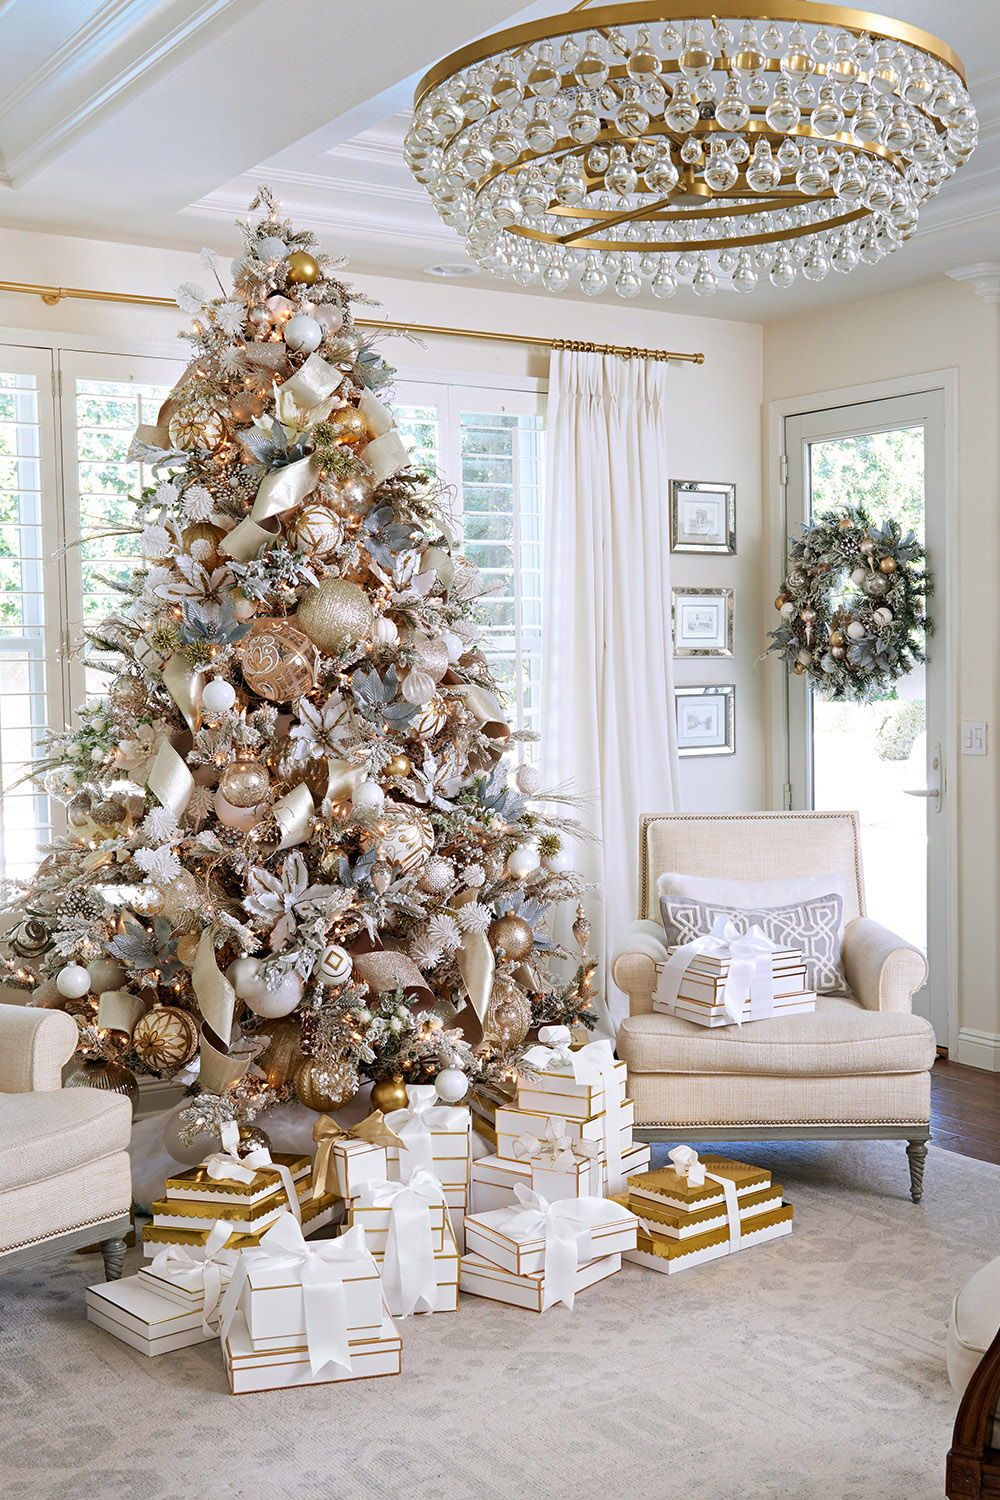 A soft flocked Christmas tree anchors this luxe holiday living room. Enhance it with faux flower blooms, ribbons, and loads of ornaments. Gift boxes, rather than paper wrappings, coordinate with the decor's color scheme. #livingroomdecor #christmaslivingroomdecor #holidaylivingroomdecor #christmasdecorideas #christmasdecorideasforlivingroom #bhg